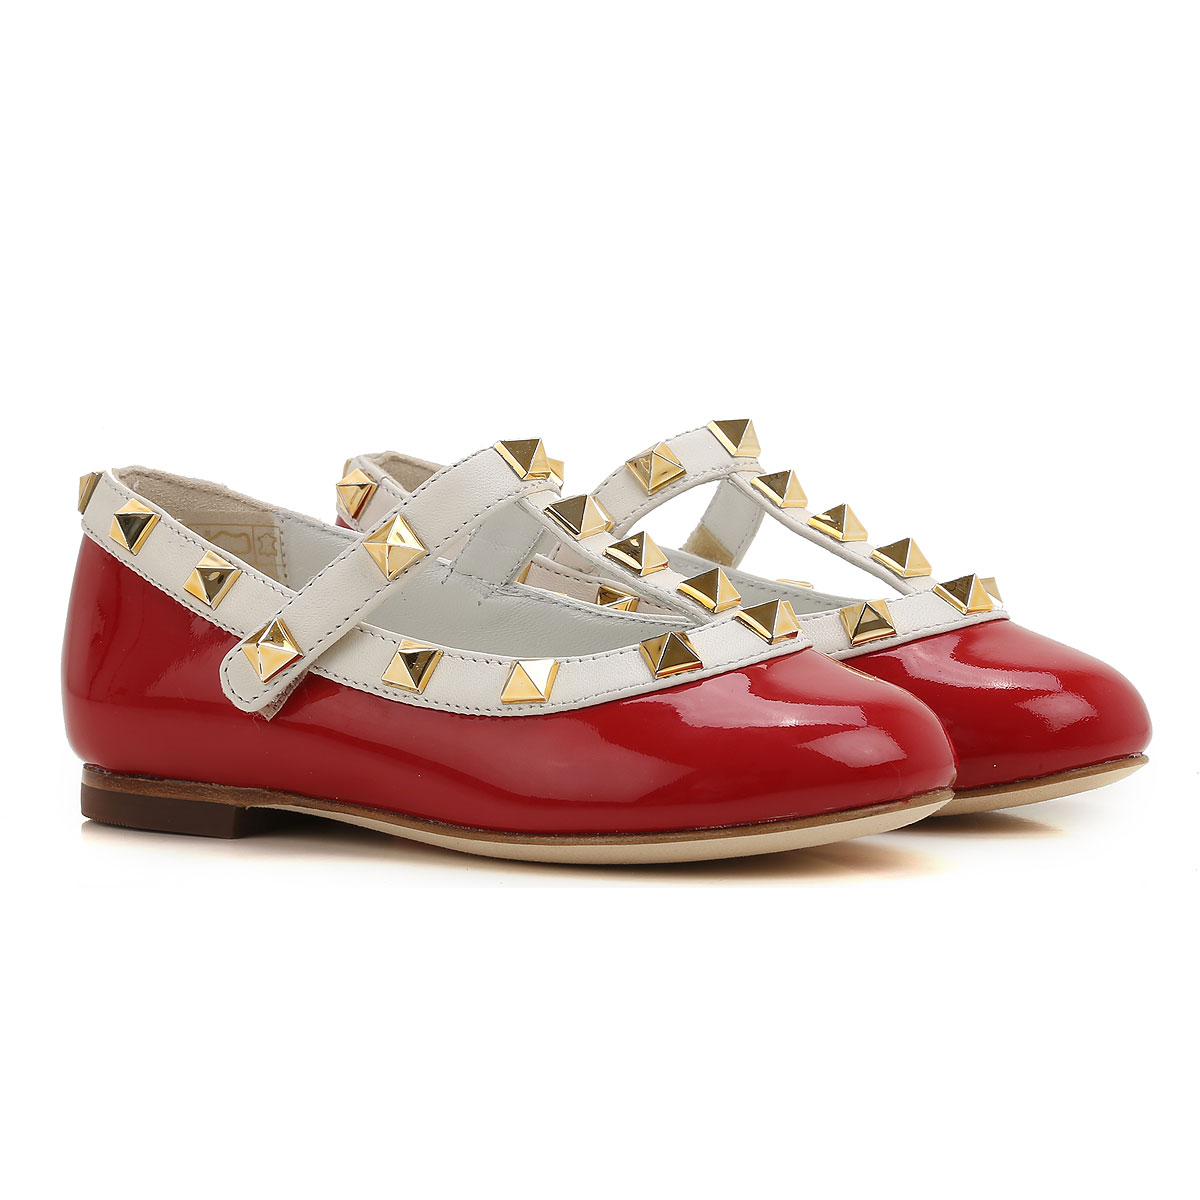 Image of Prosperine Kids Shoes for Girls, Red, Patent Leather, 2017, 24 25 27 28 29 30 31 32 33 34 35